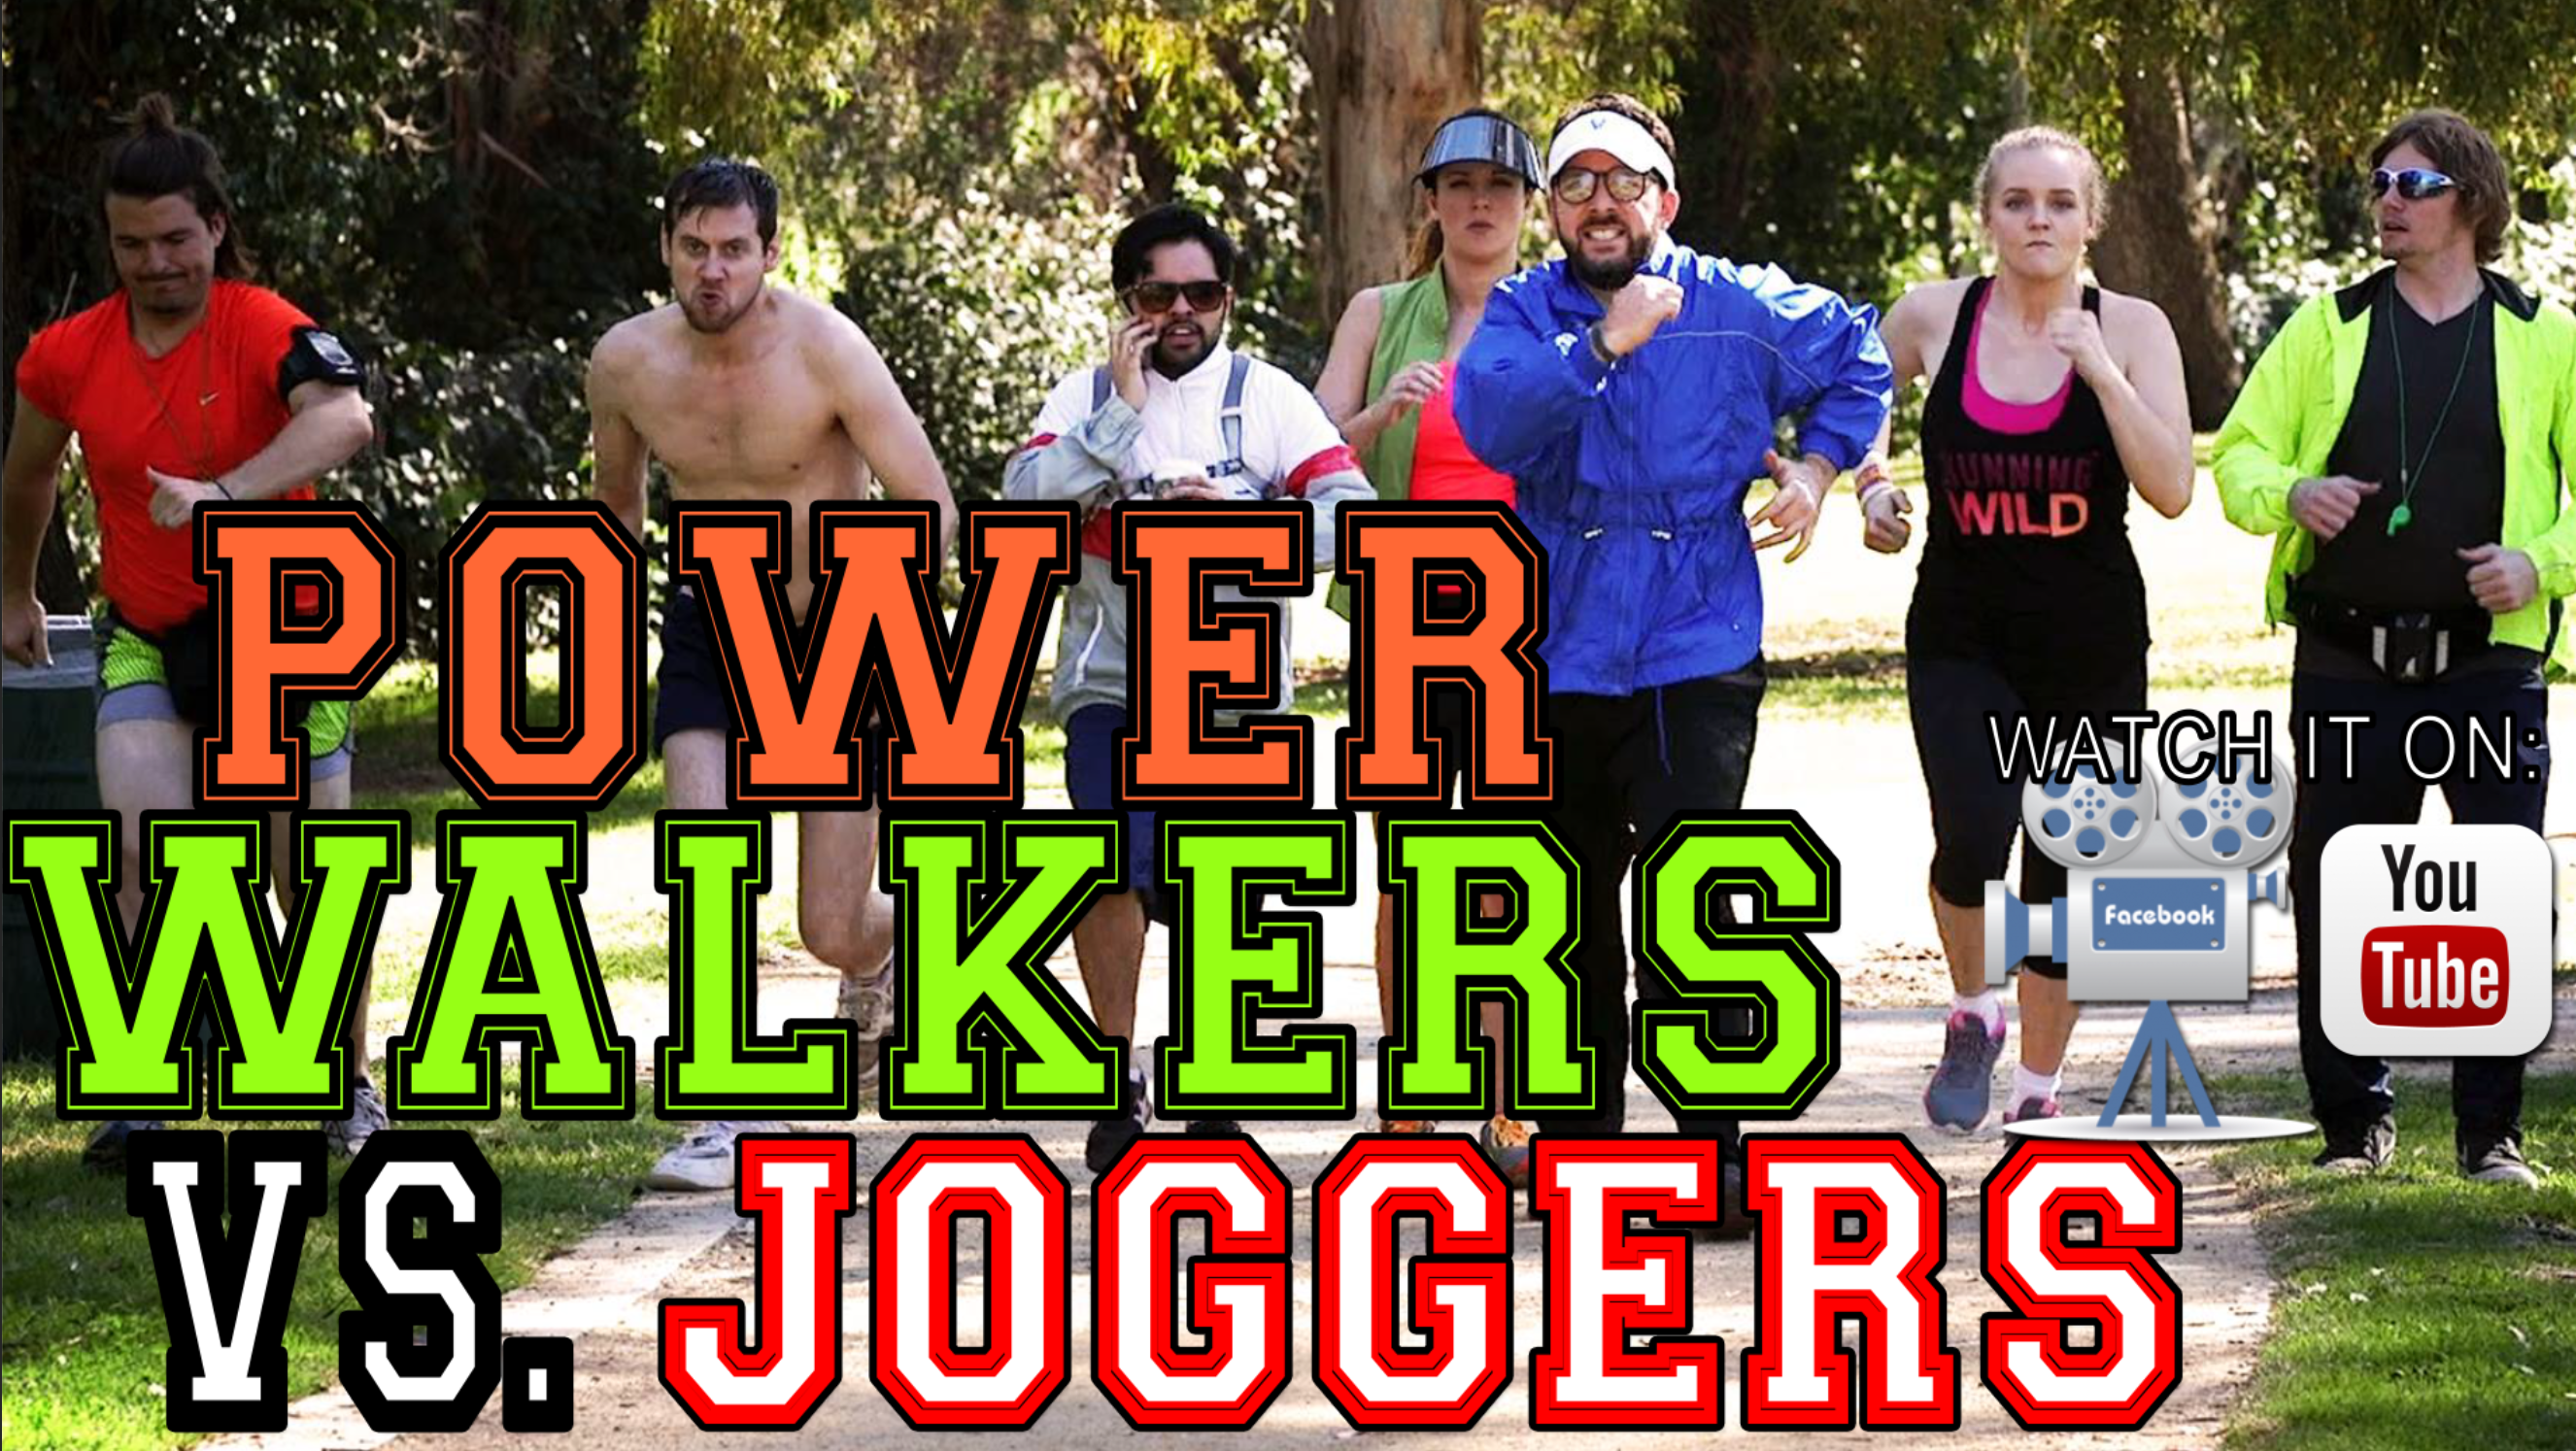 New Sketch Comedy VID: Power Walkers Vs. Joggers